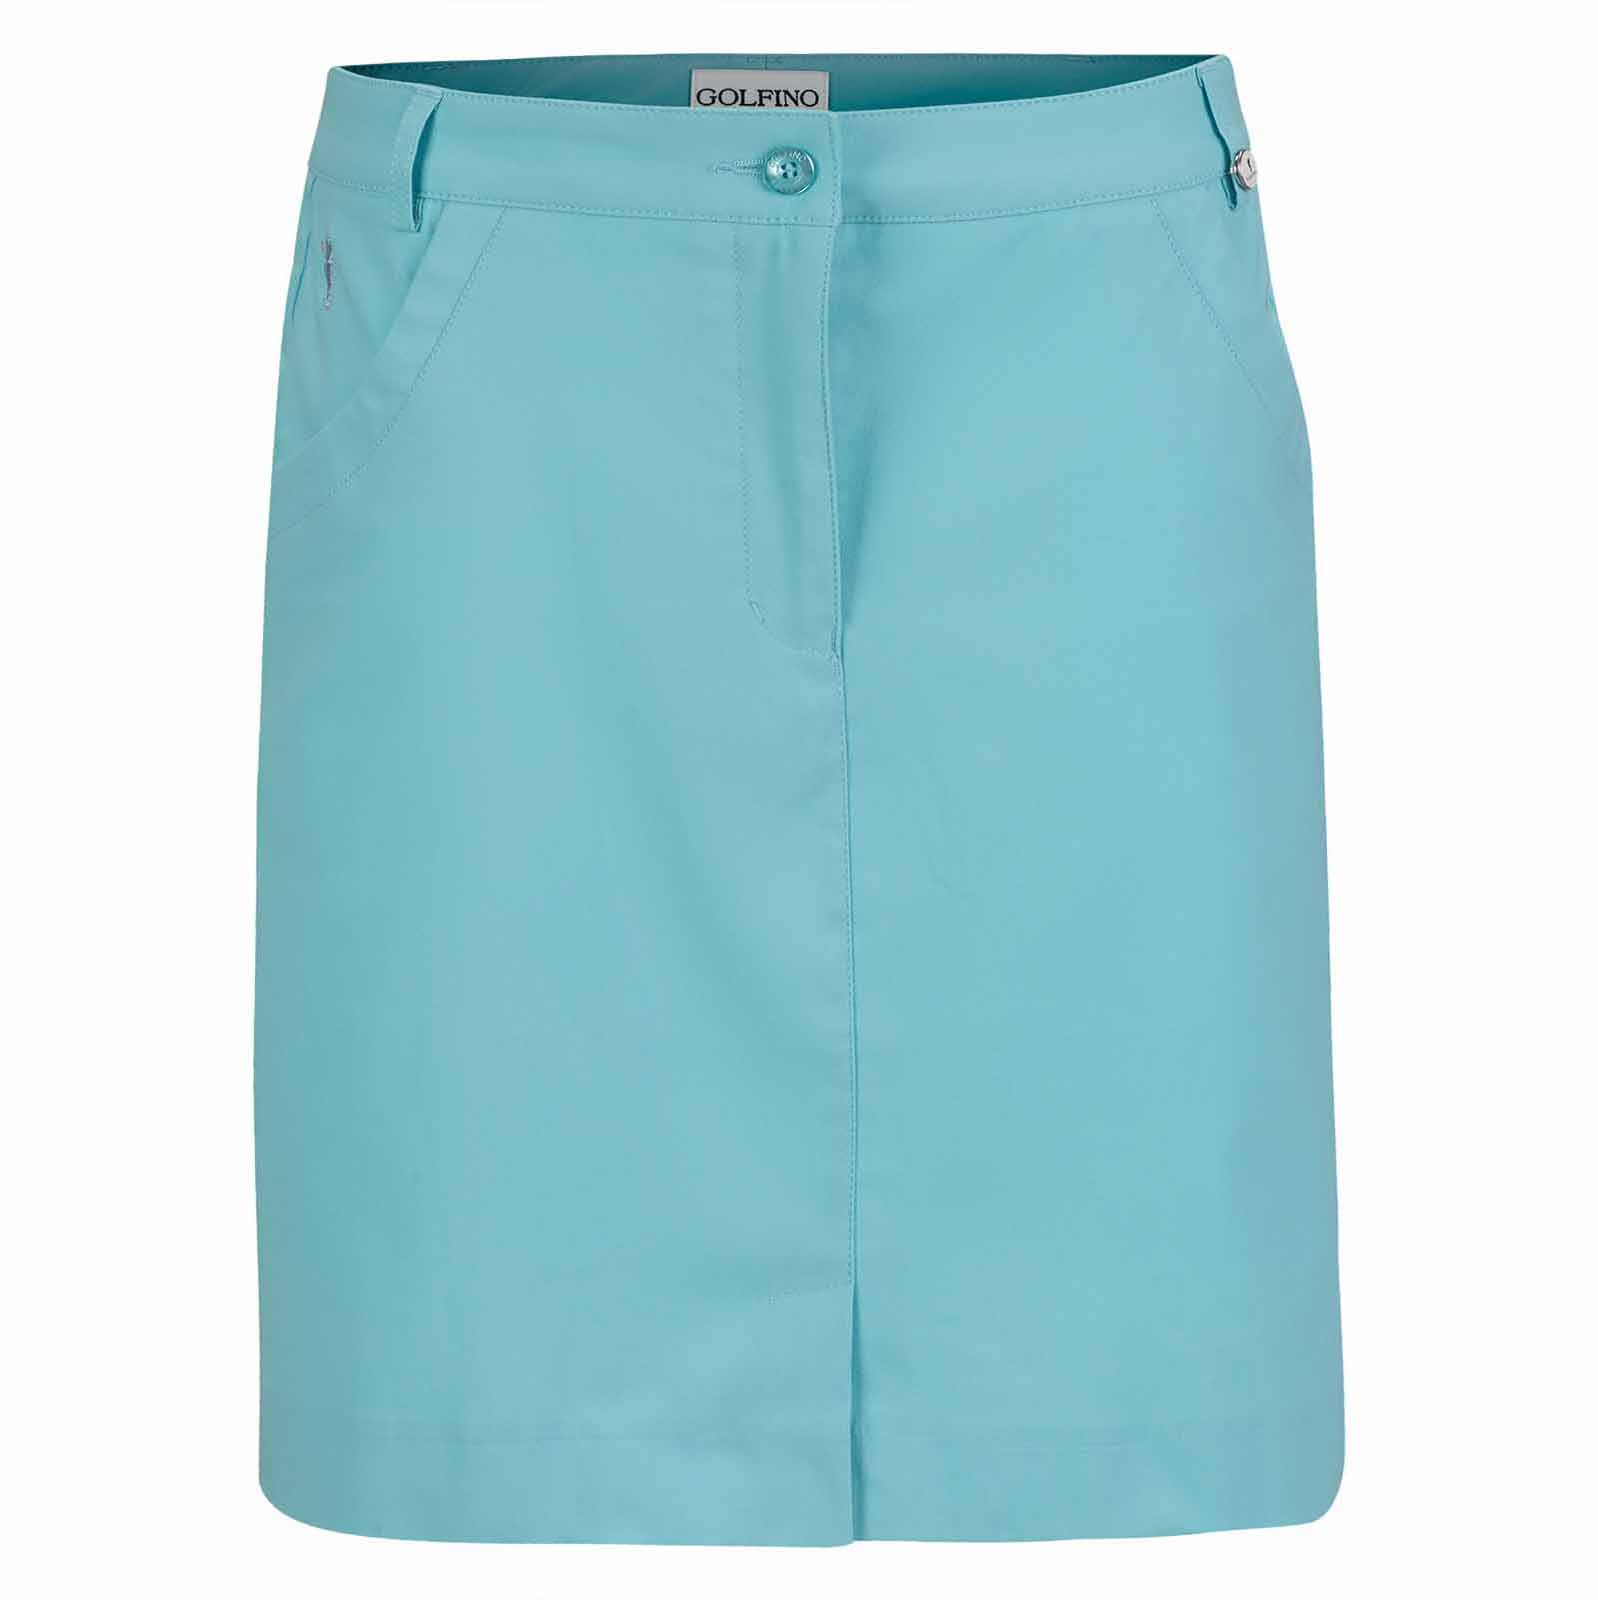 Falda pantalón de golf mediana Sofiguard de mujer de Techno-Stretch con Sun Protection